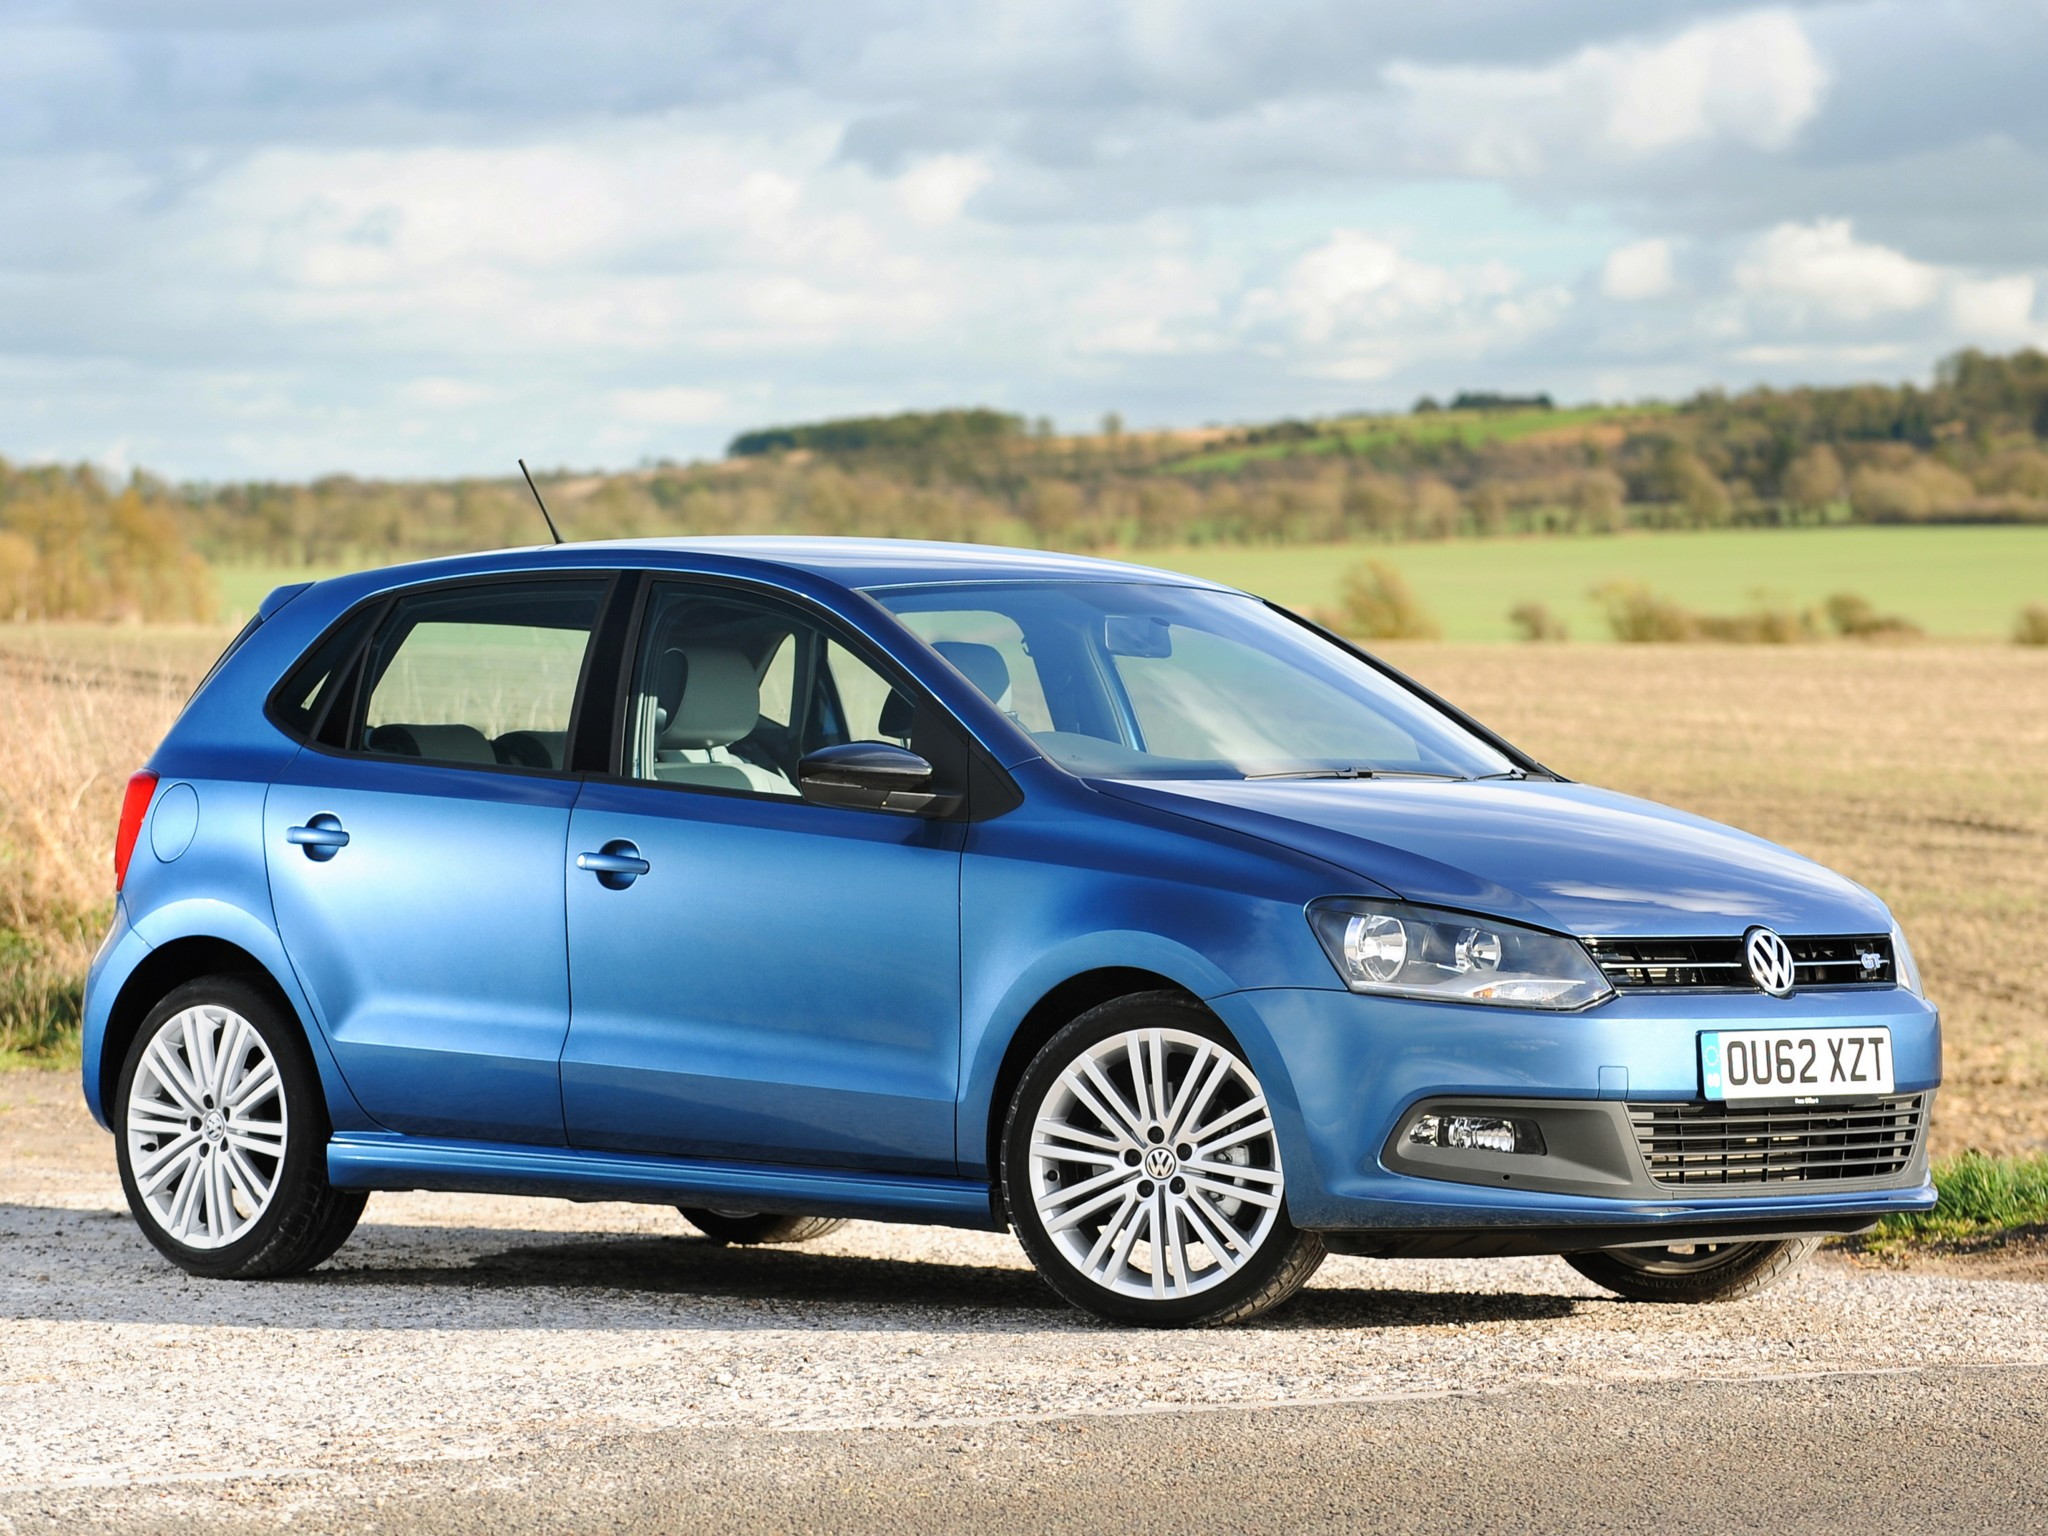 New Polo Bluegt 150 Hp Fuel Sipper Goes On Sale In Europe